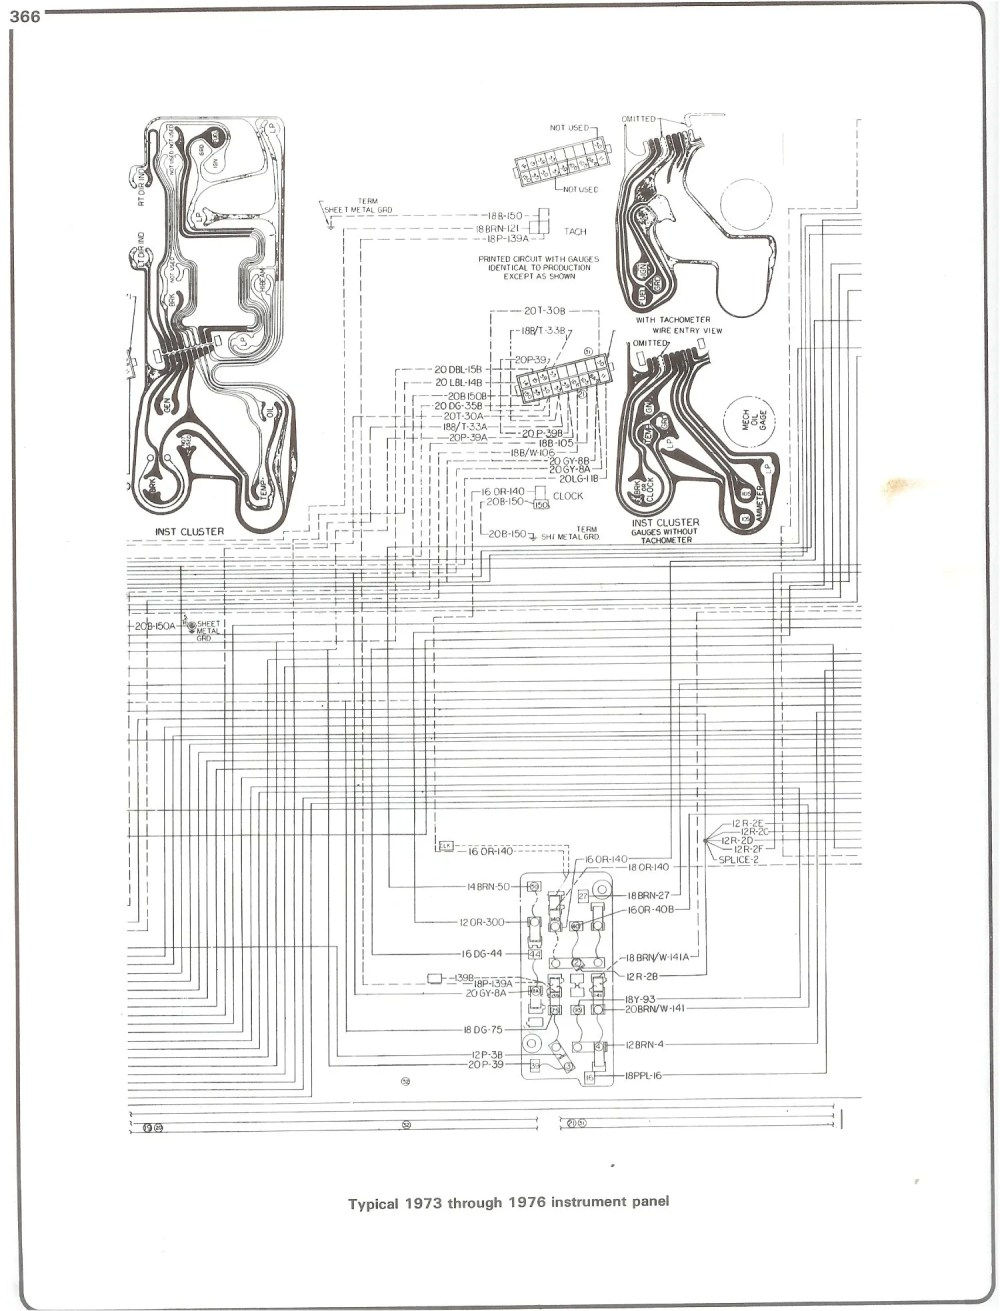 medium resolution of complete 73 87 wiring diagrams chevy truck wiring diagrams chevy truck wiring